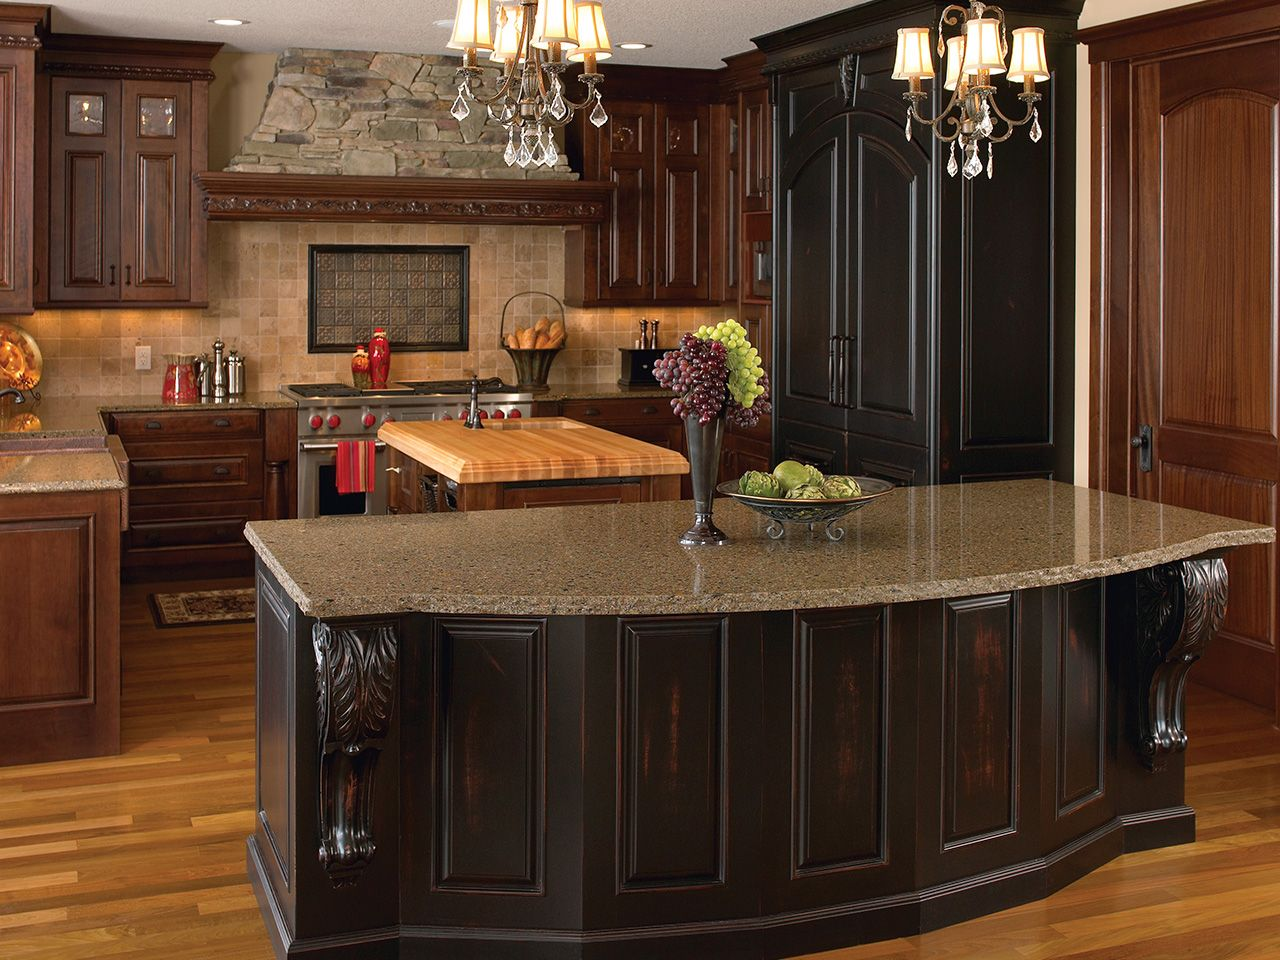 Best Kitchen Countertops 61 best cambria quartz - kitchen countertops images on pinterest